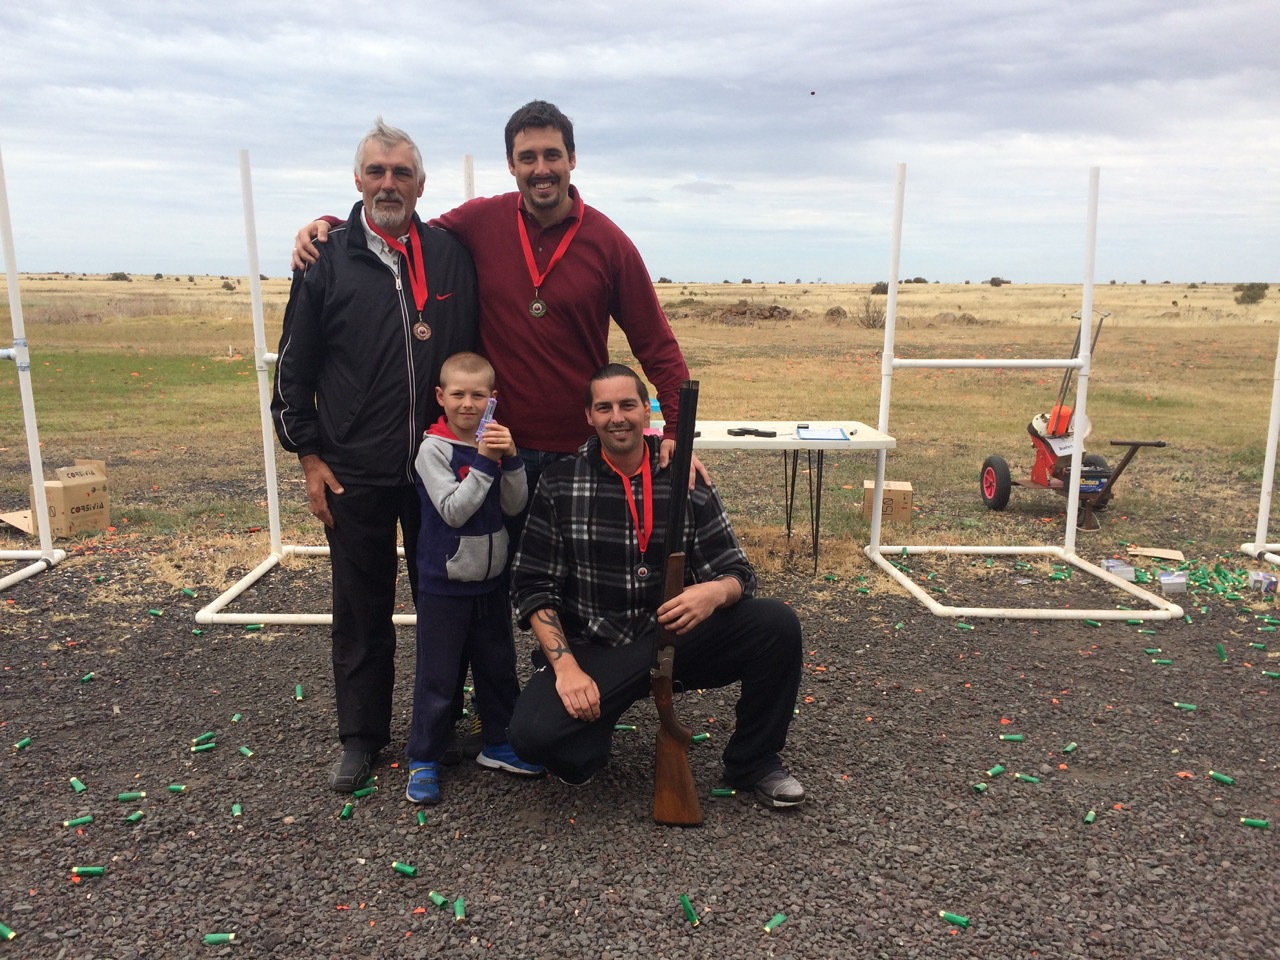 Clay Shooting 5-6 people - Gold Coast (Beaudesert)